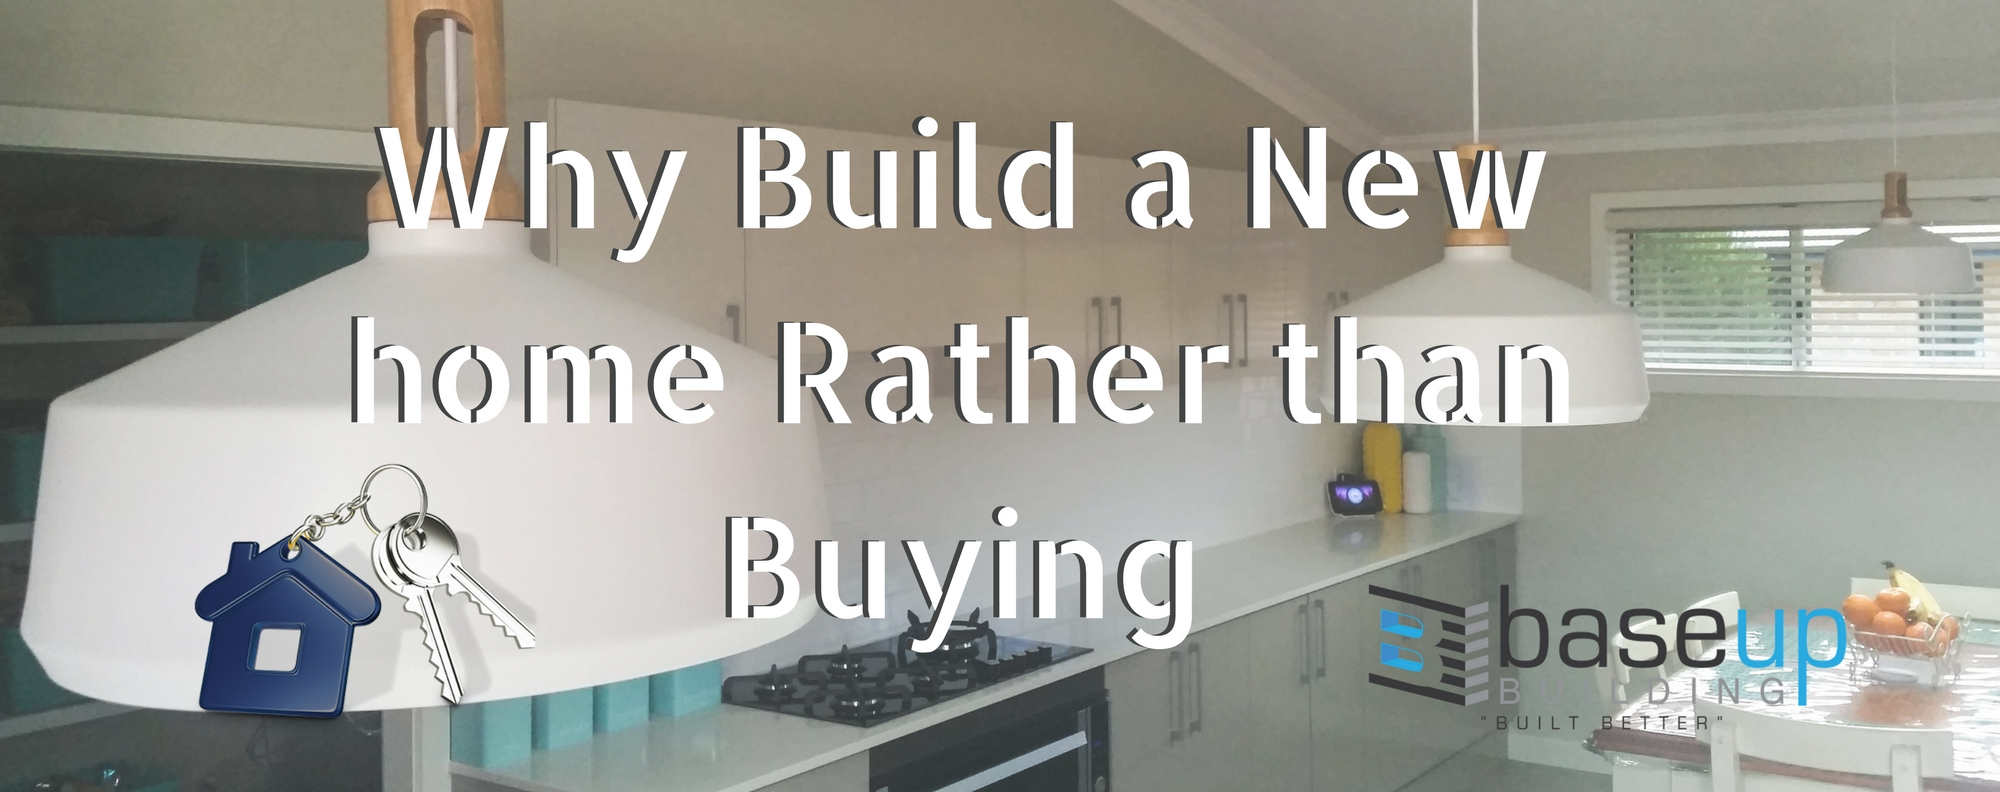 Why Build Rather Than Buy